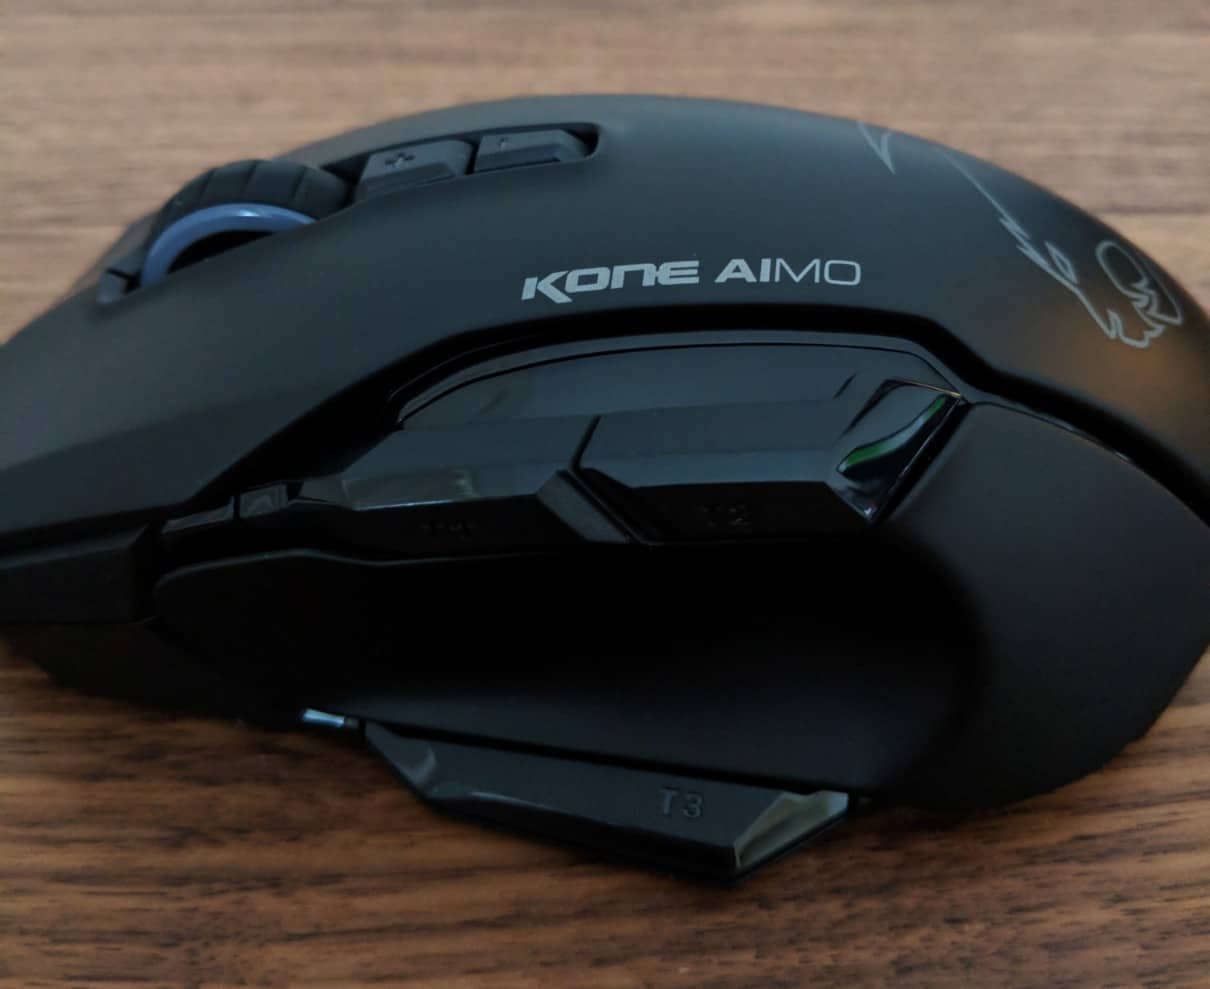 Roccat-Kone-Aimo-Photos-12 Roccat Kone AIMO Gaming Mouse Review